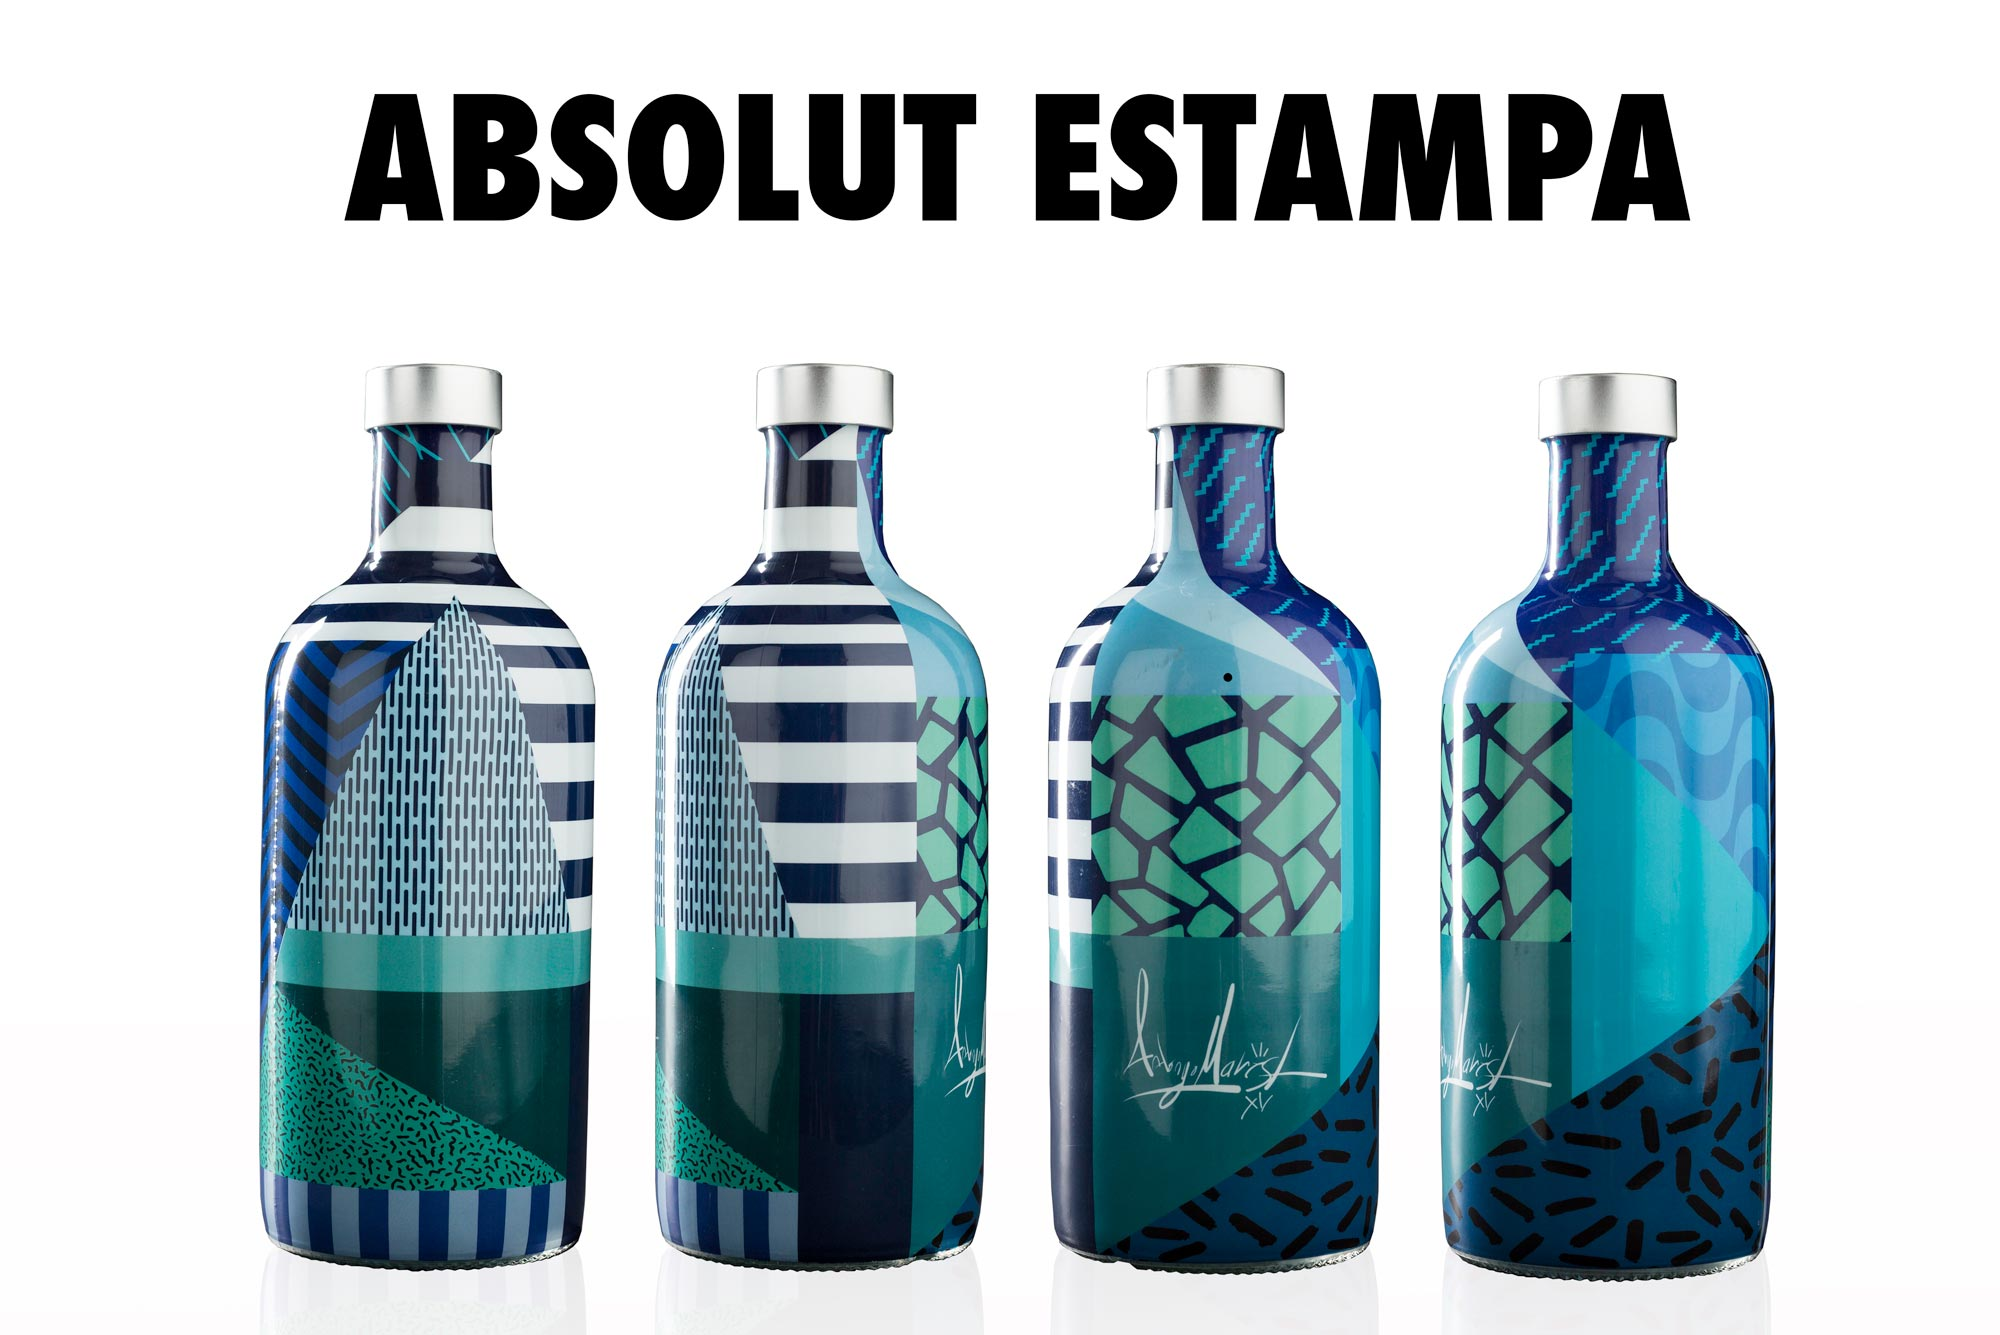 ABSOLUT-ESTAMPA